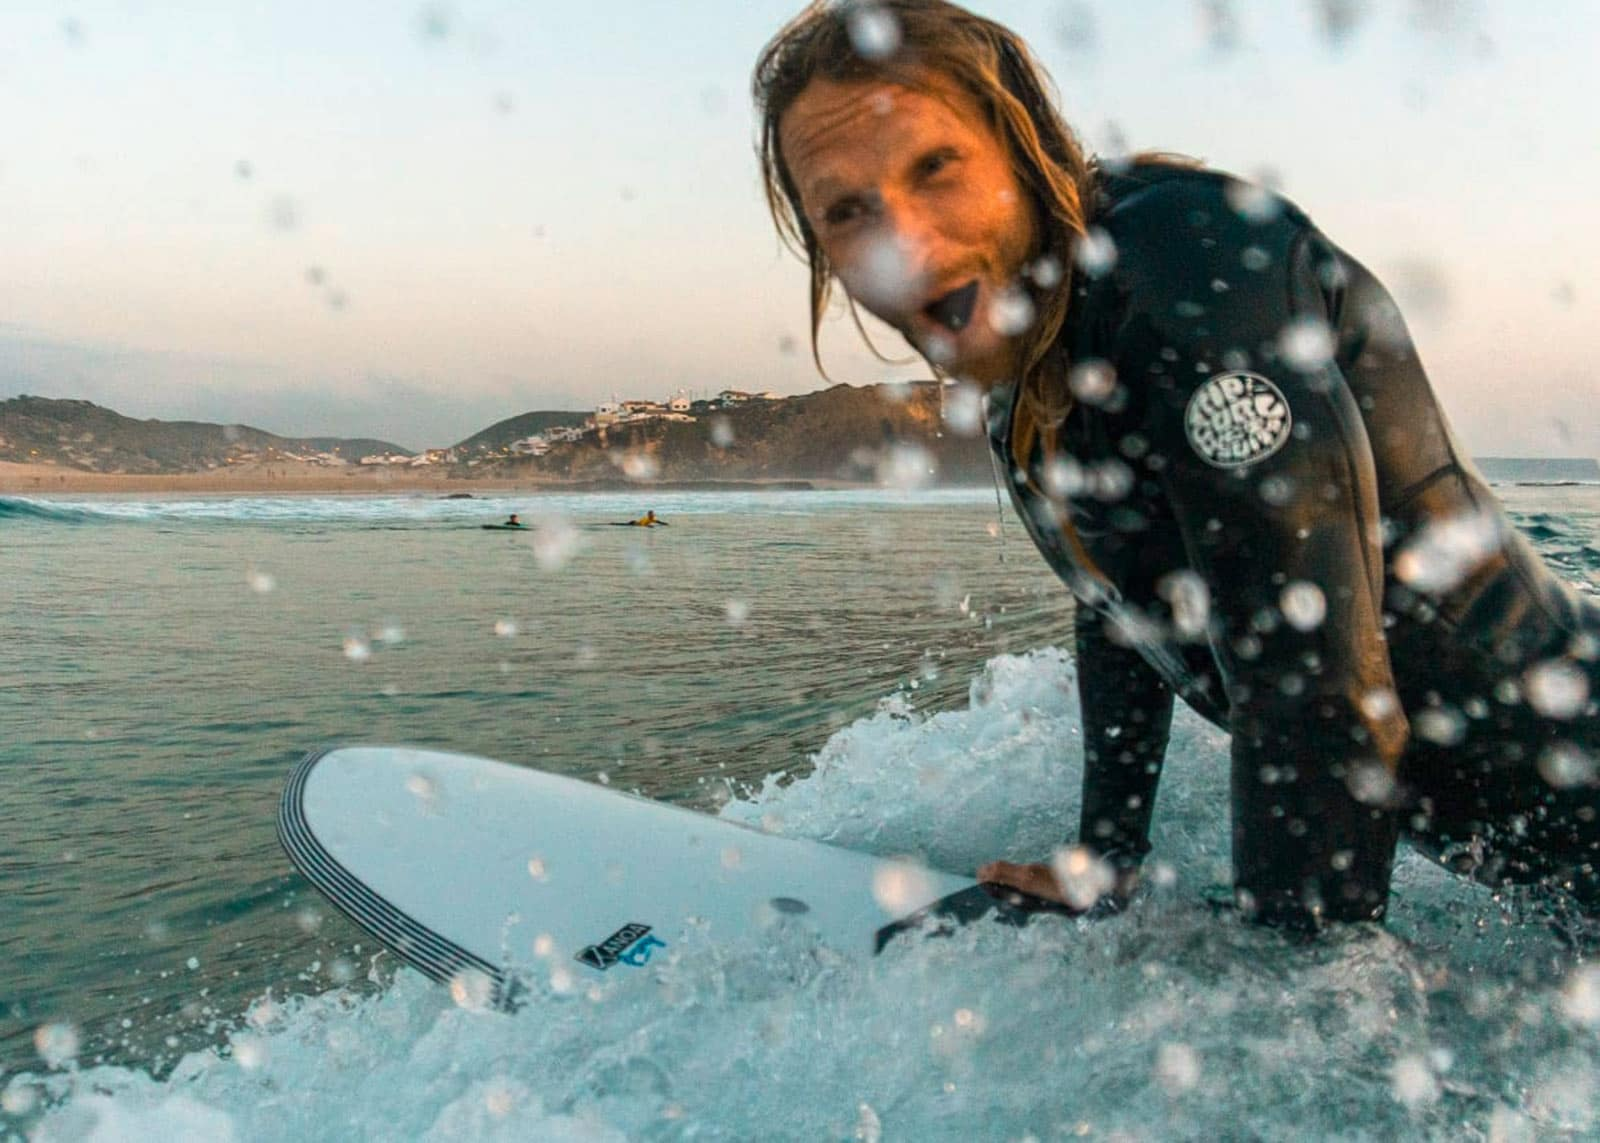 find the right beginner surfboard